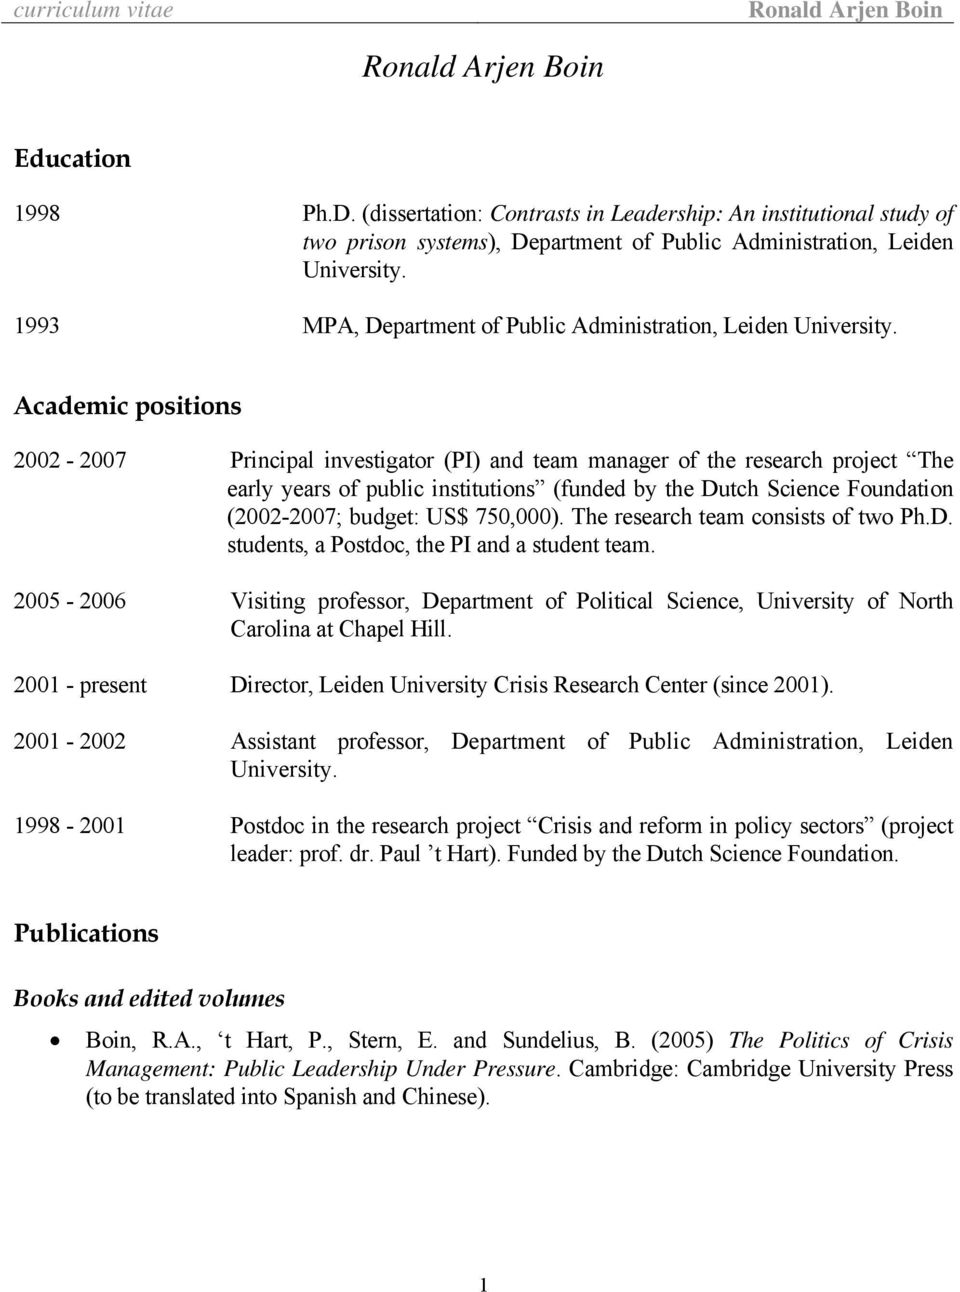 Academic positions 2002-2007 Principal investigator (PI) and team manager of the research project The early years of public institutions (funded by the Dutch Science Foundation (2002-2007; budget: